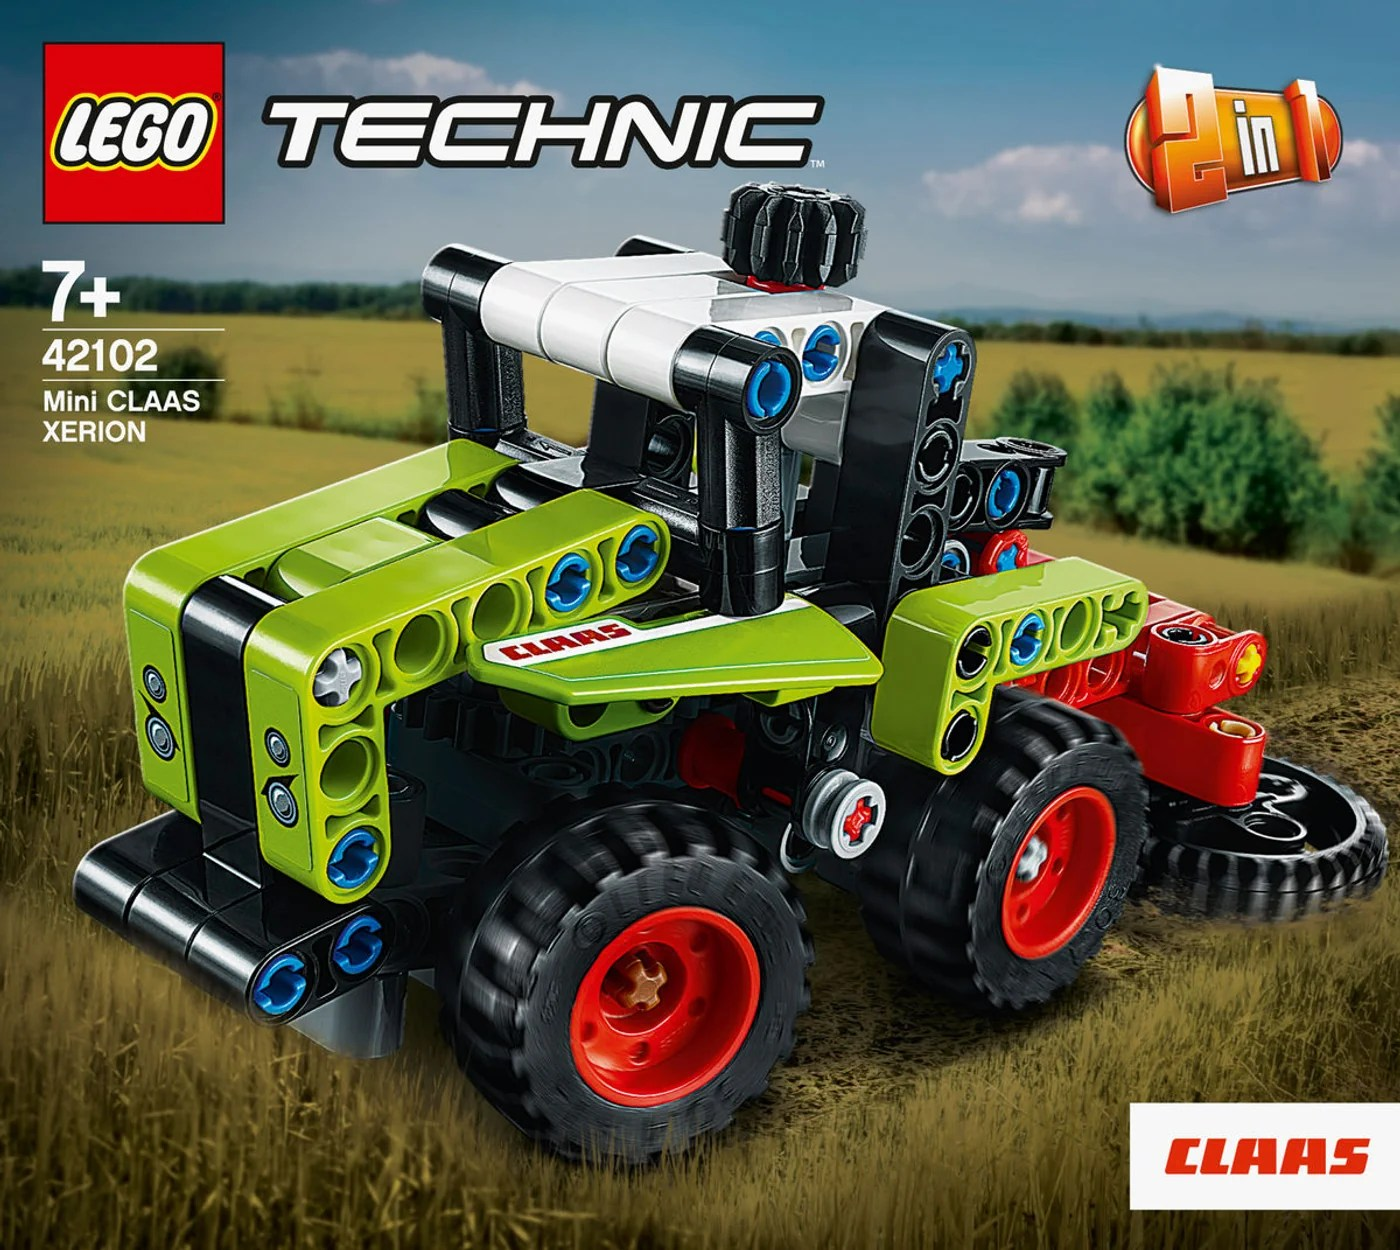 Claas Bettwäsche Lego® Technic 42102 Mini Claas Xerion | Migros